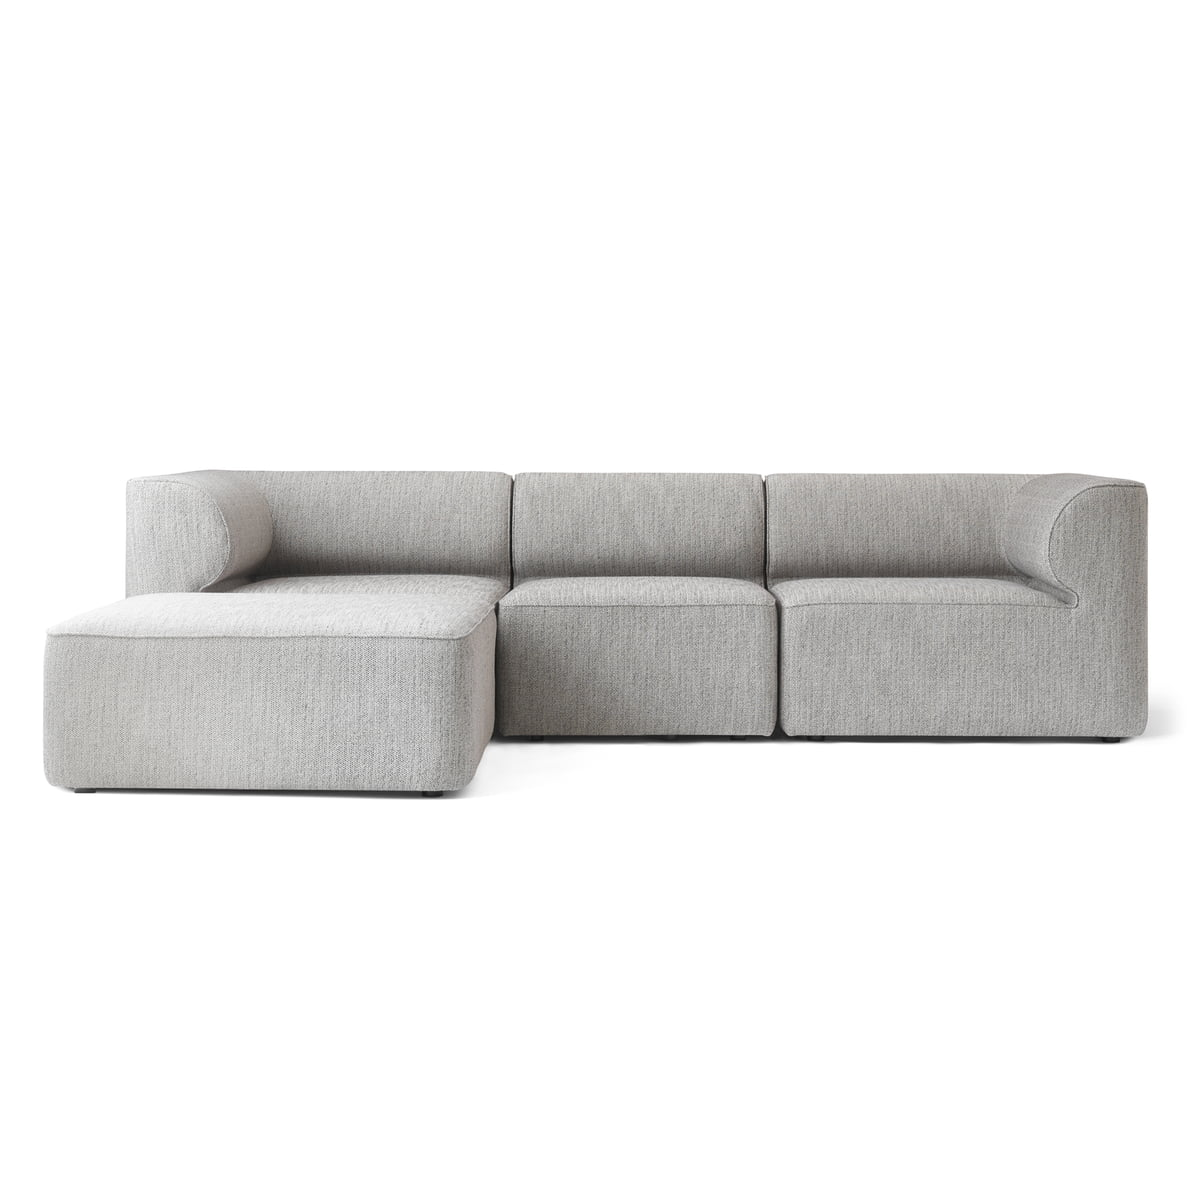 Modular Furniture Sofa: Eave Modular Sofa By Menu